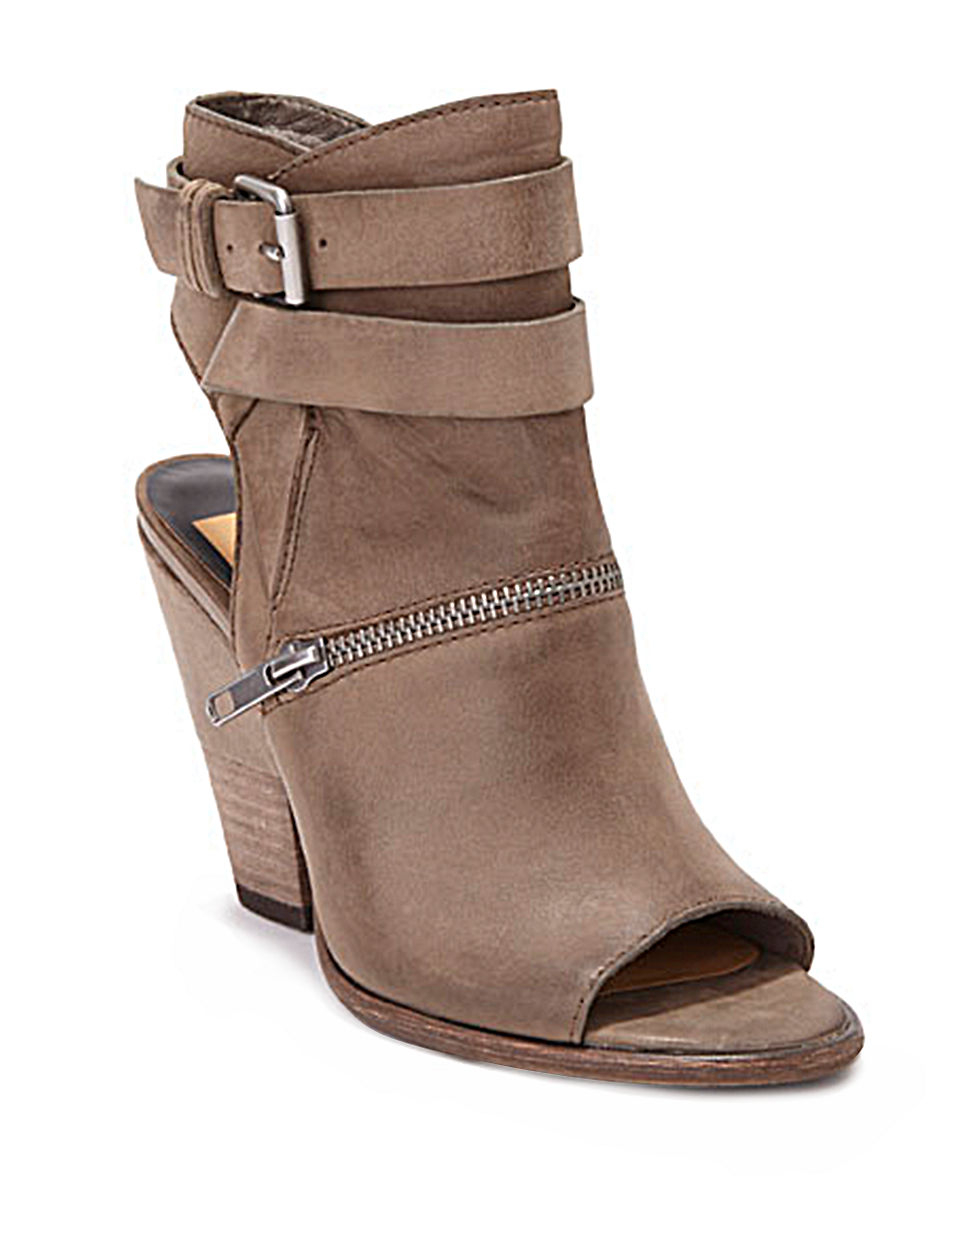 Shop for bootie style shoes online at DSW. We have a broad selection of designer and brand-name booties. Styles include ankle boots, wedge booties, cutout booties, peep toe booties, and more.